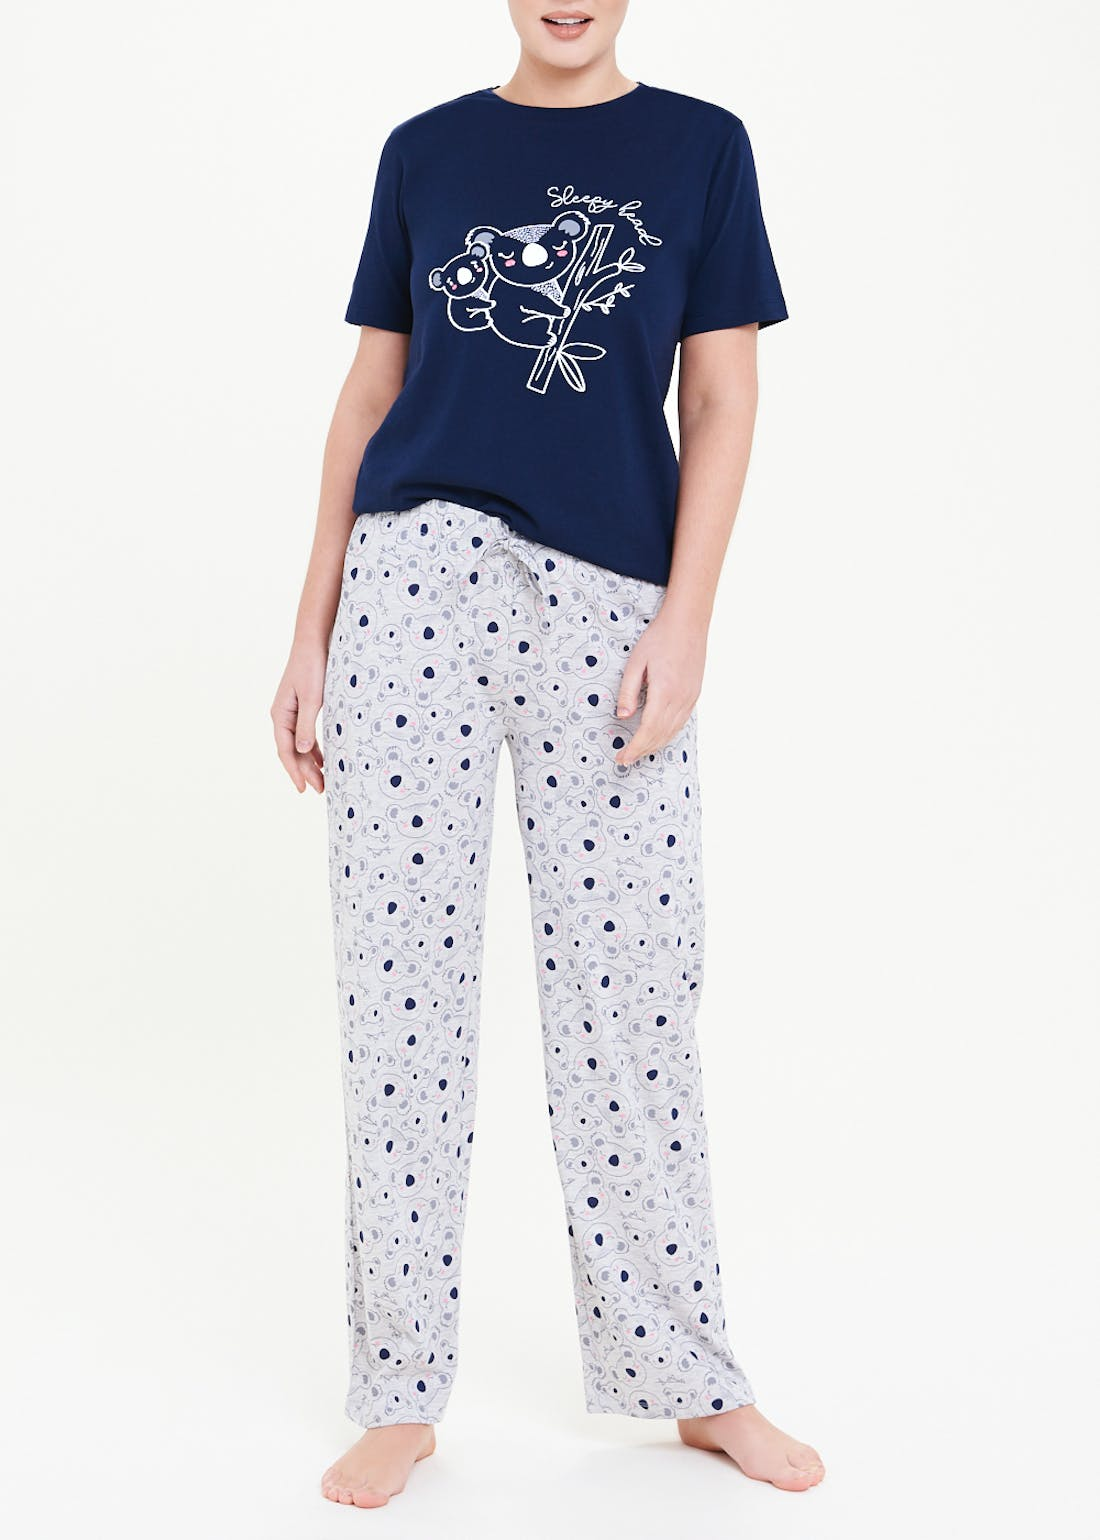 Mix And Match Koala Pyjama Top